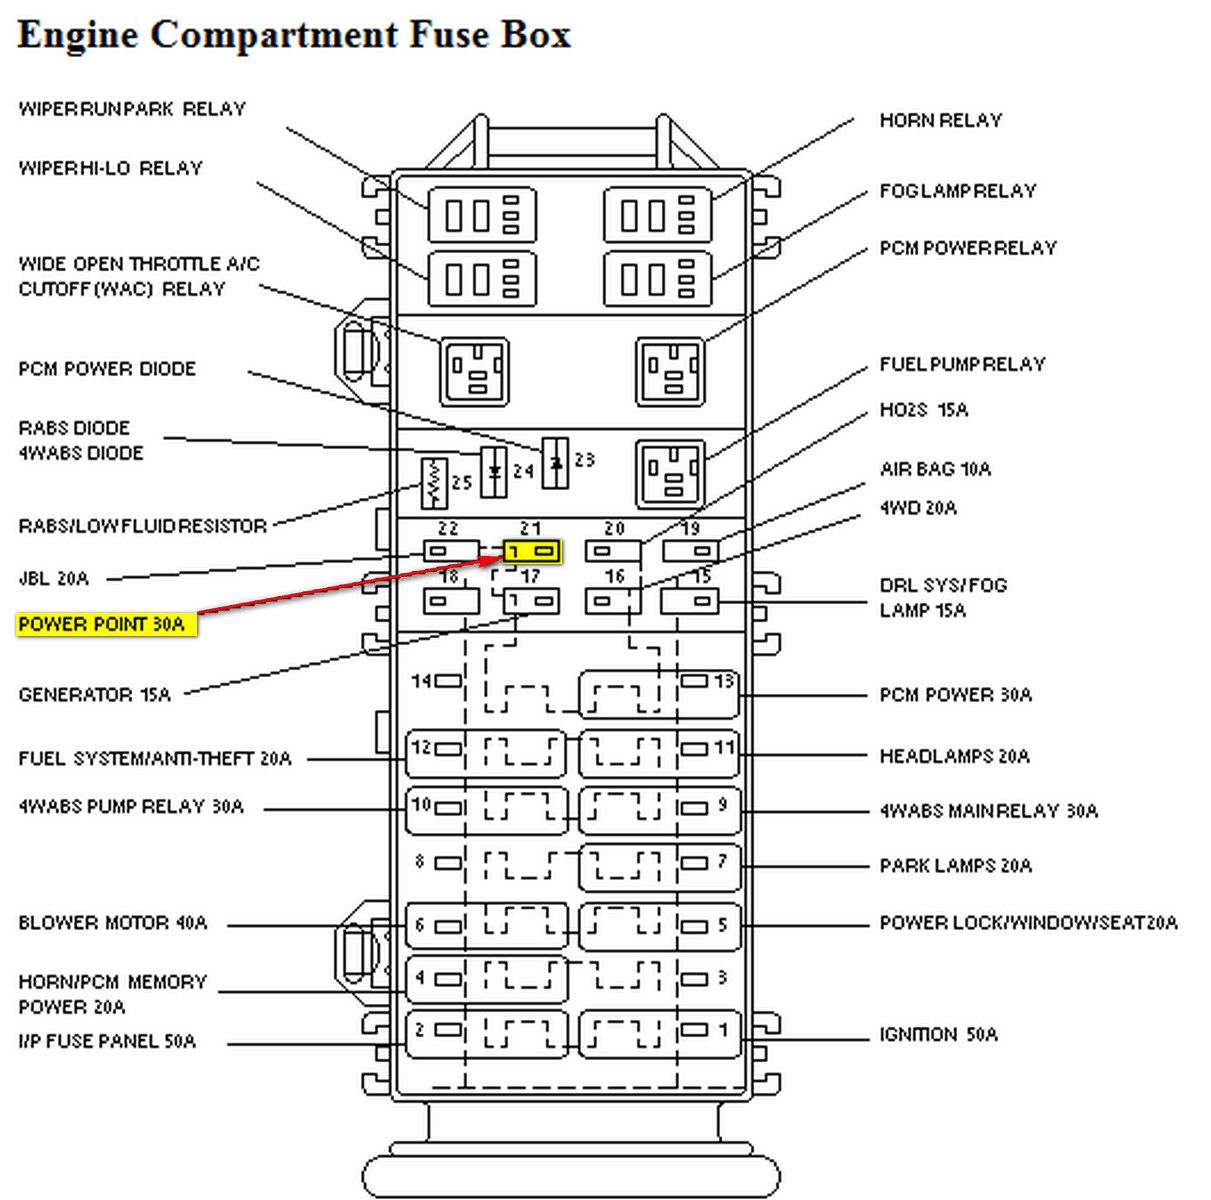 8a55967da7ae1bd251b795845886bd24 2002 ford ranger fuse diagram 1997 ford ranger fuse box diagram 2002 ford ranger fuse box diagram at mifinder.co